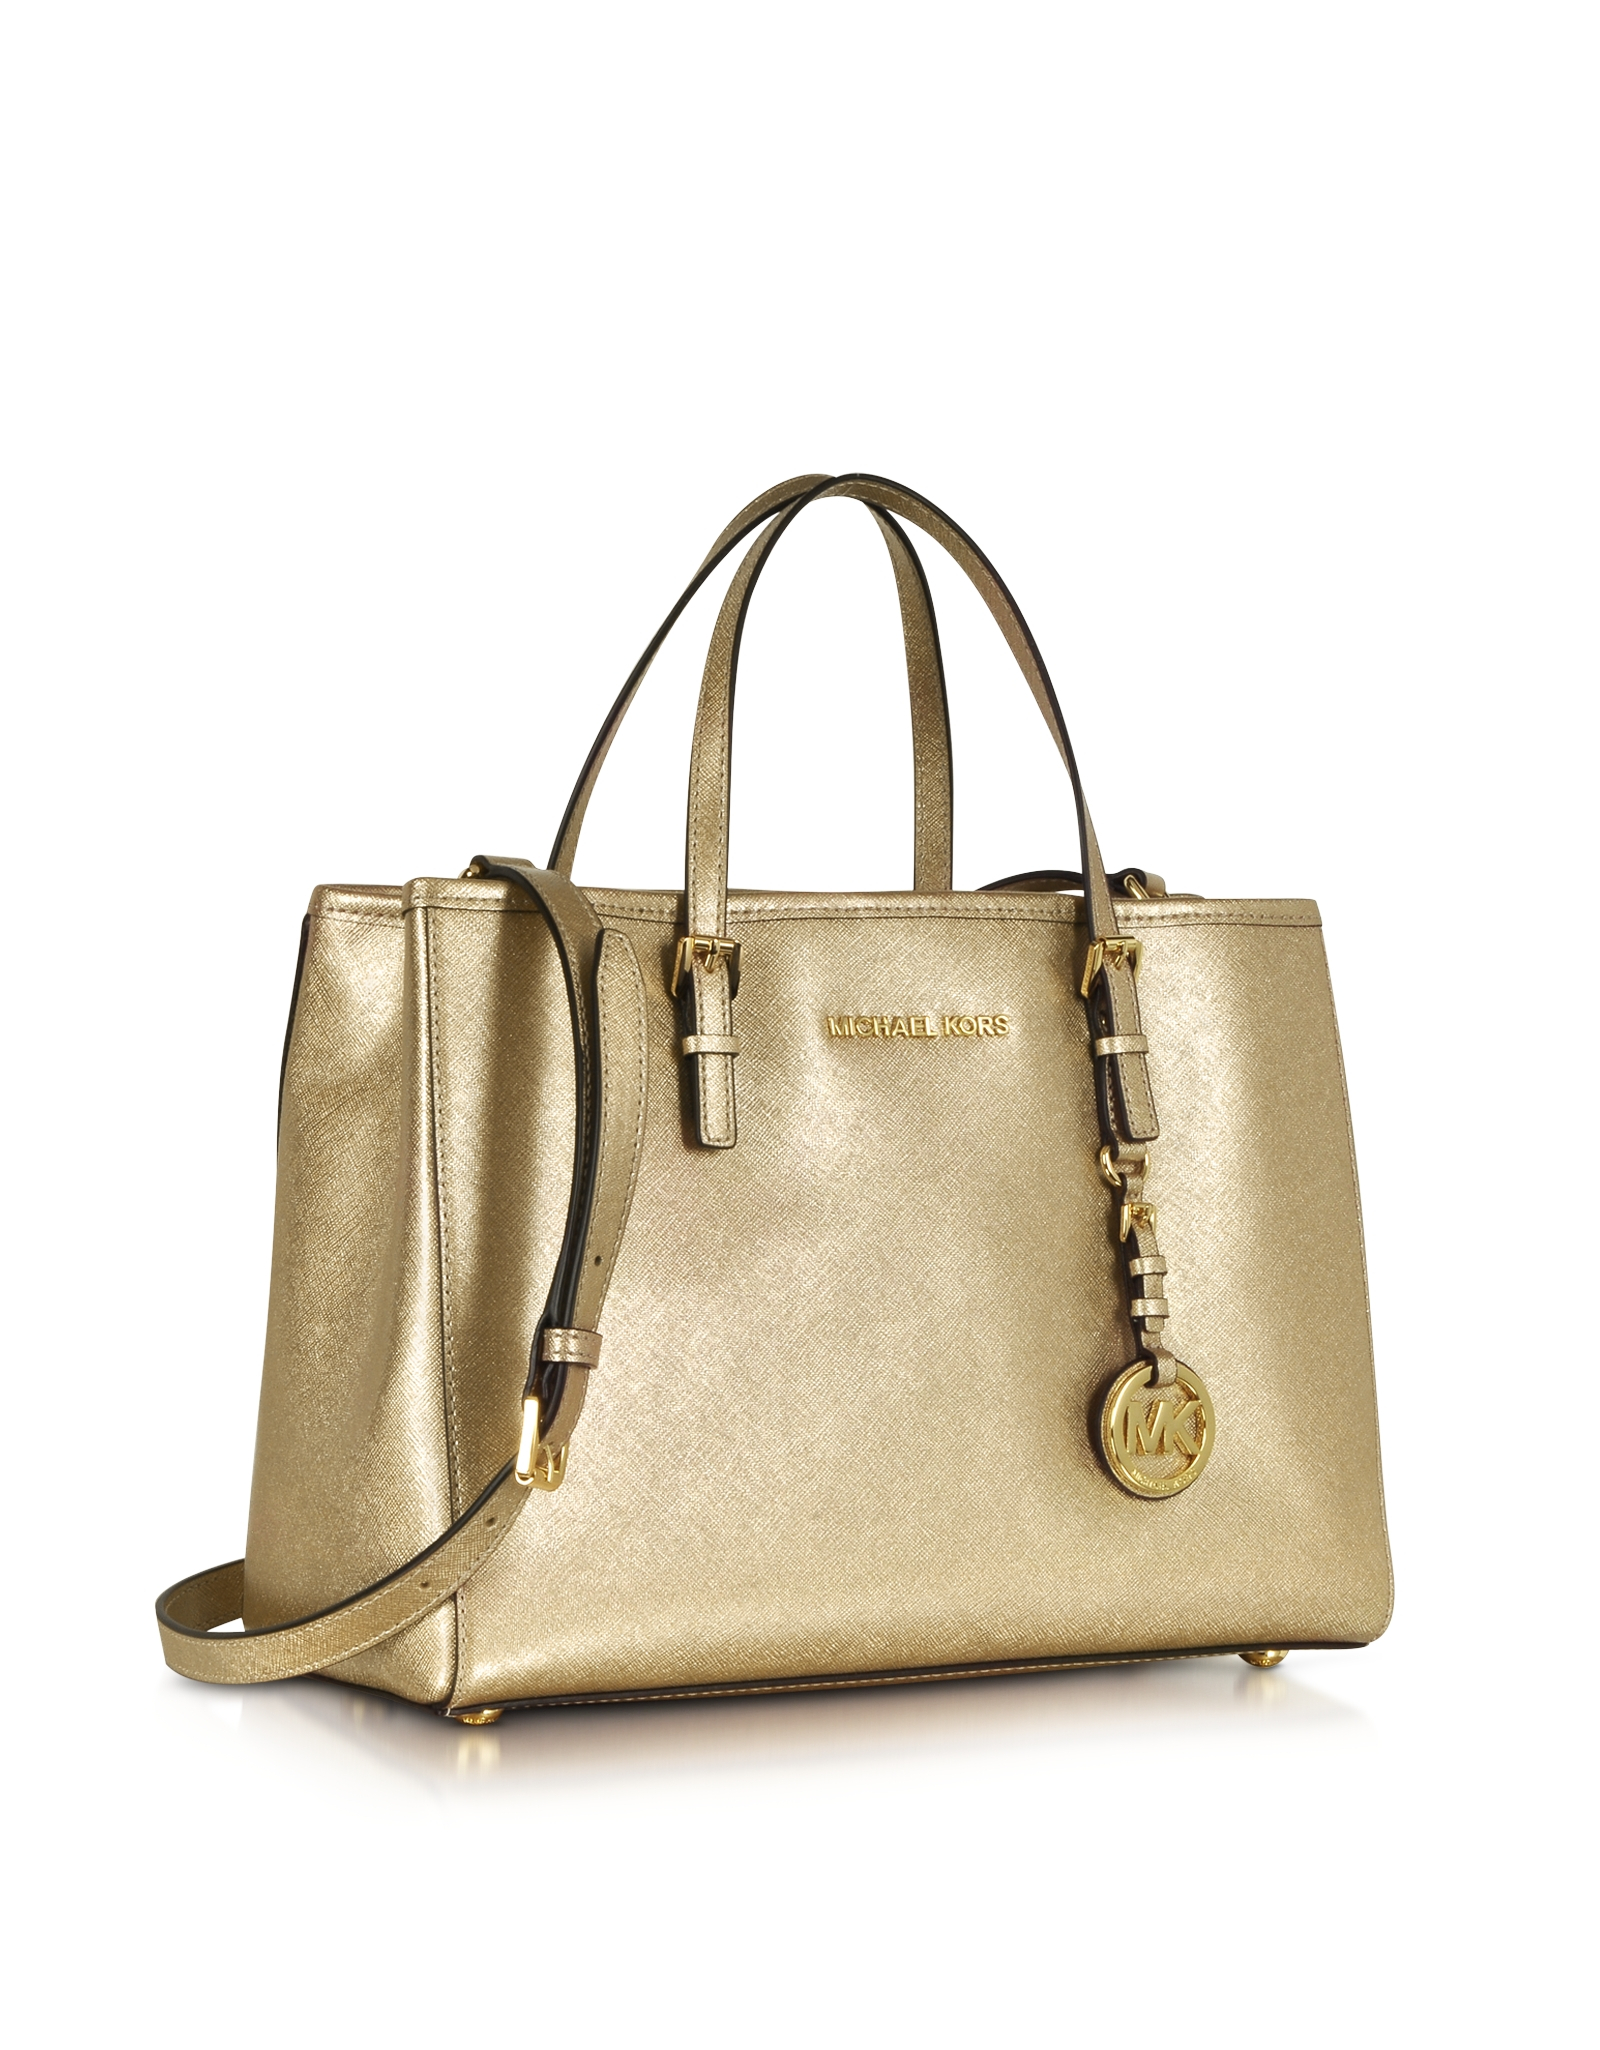 4cbbba57c2bb ... top quality lyst michael kors jet set travel pale gold metallic saffiano  ce092 da711